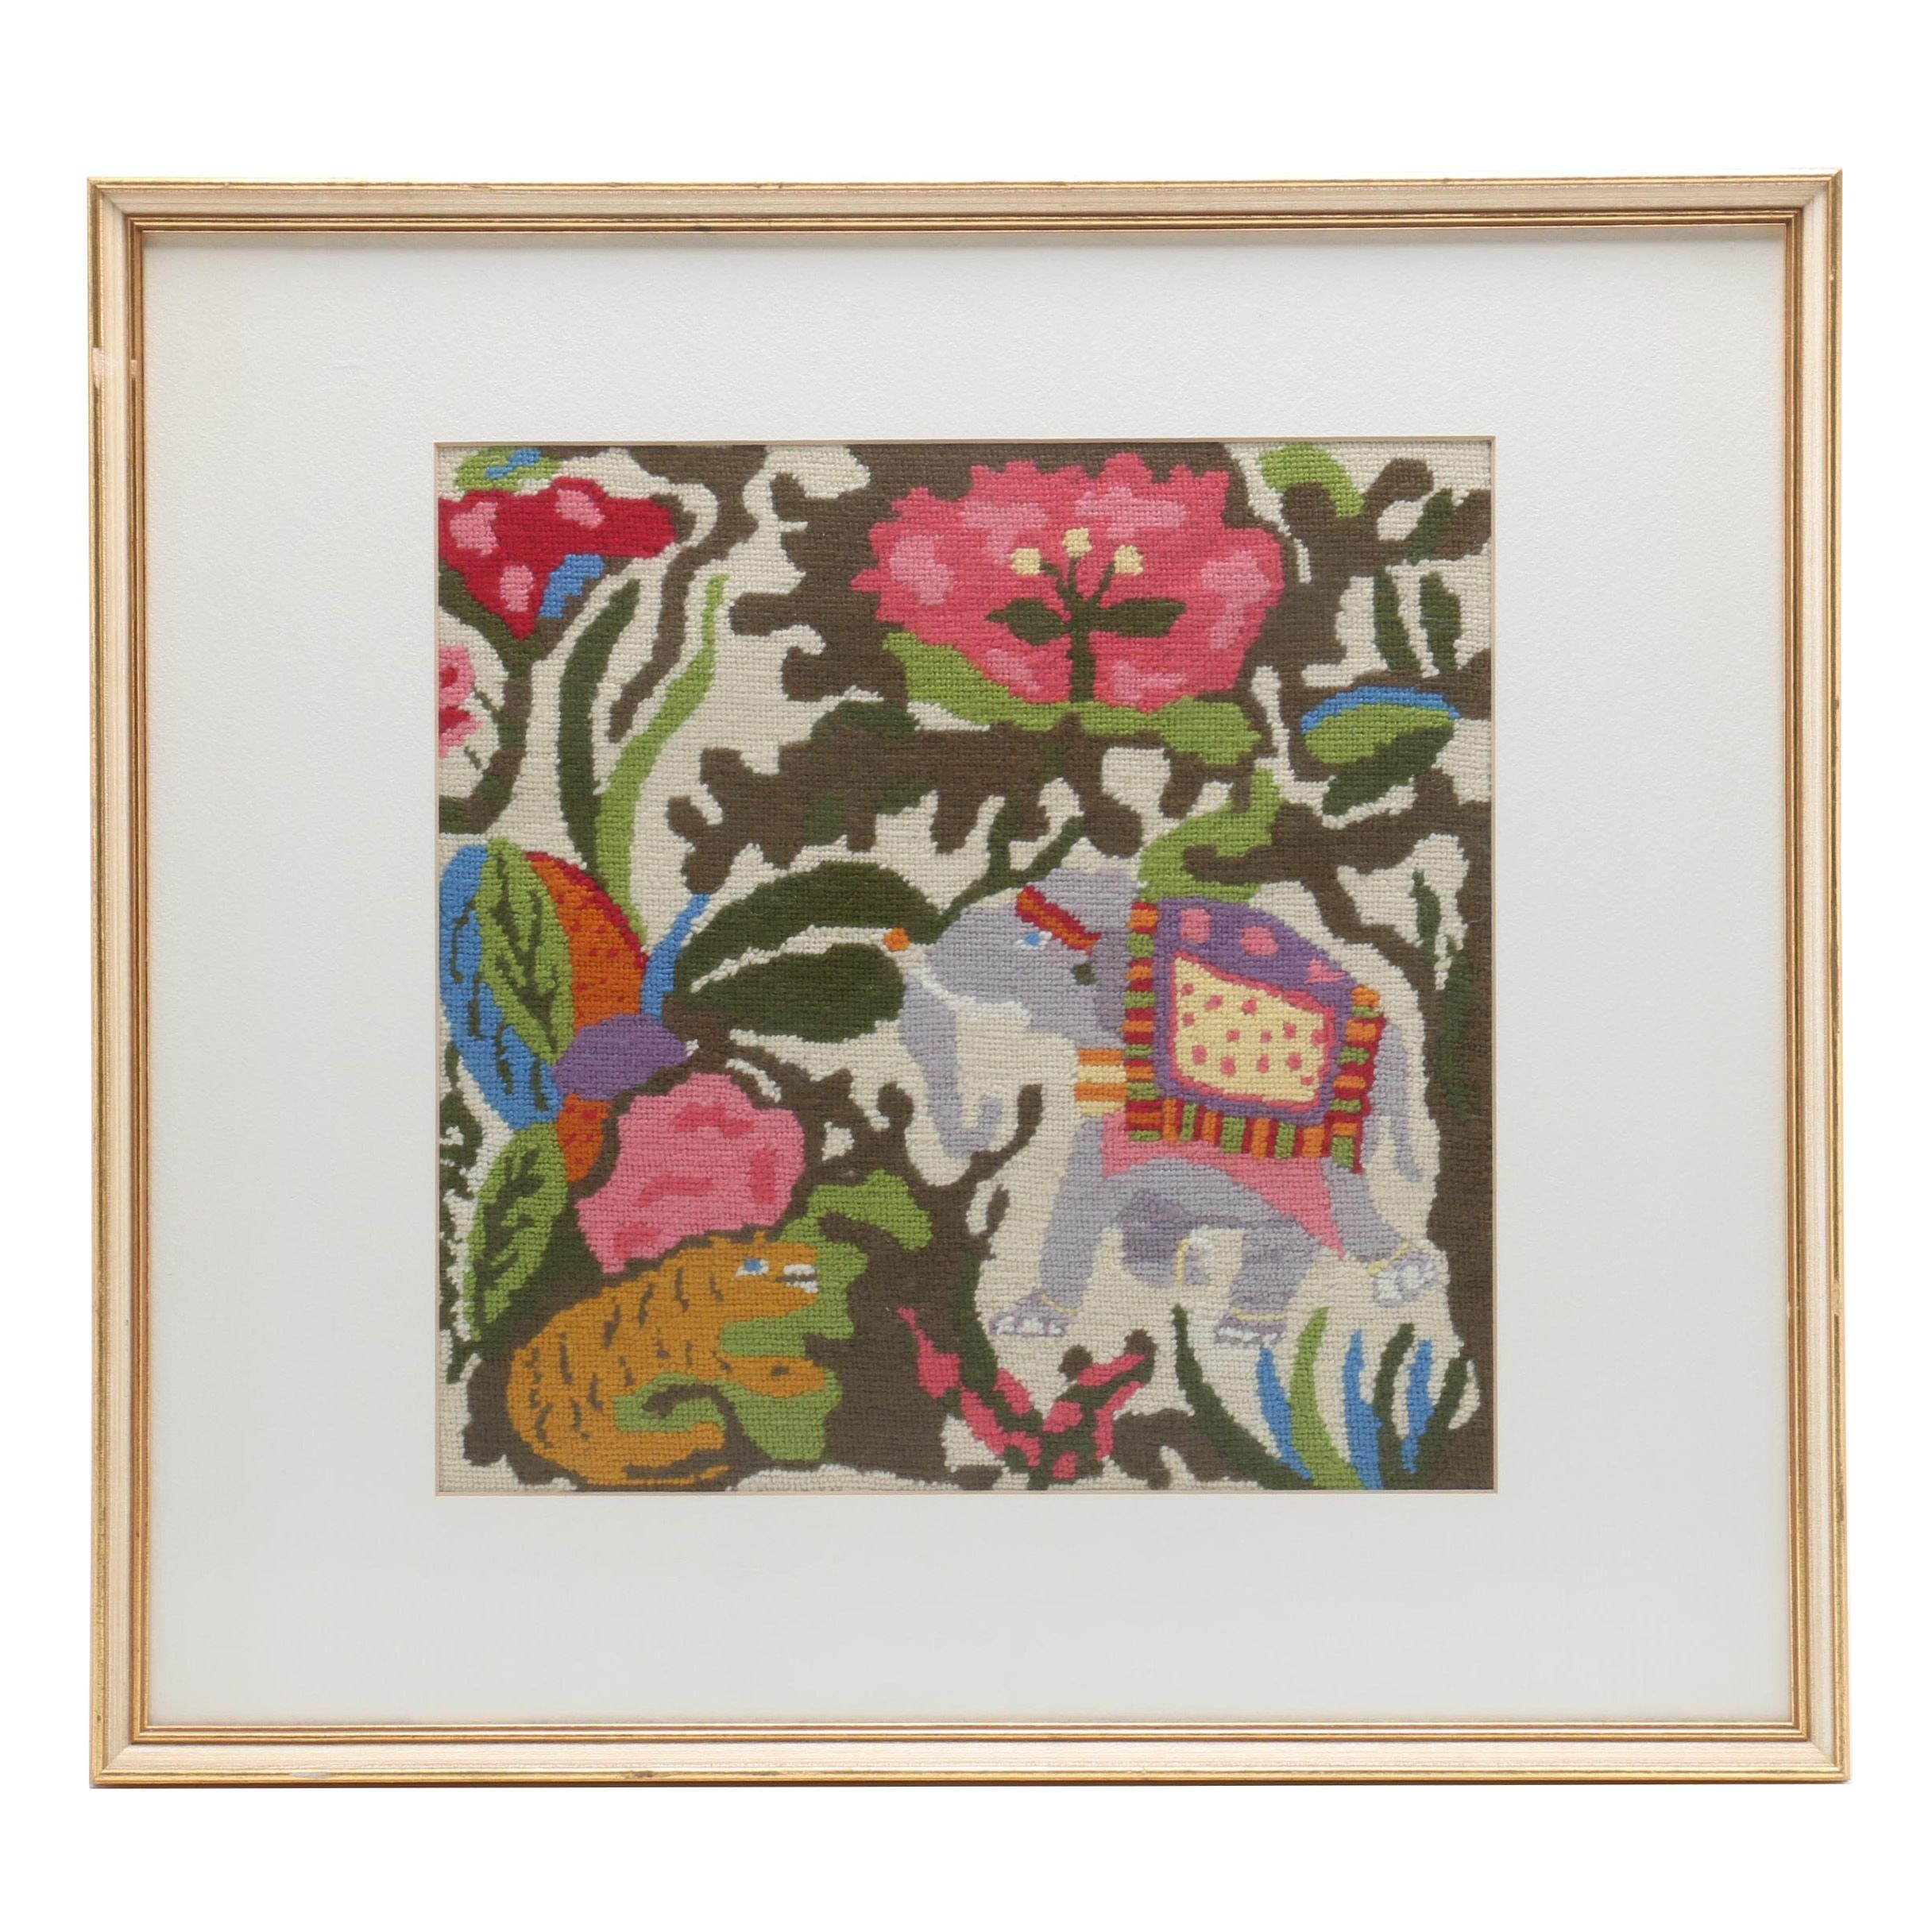 Framed Needlepoint Panel of Elephant and Tiger in Colorful Garden